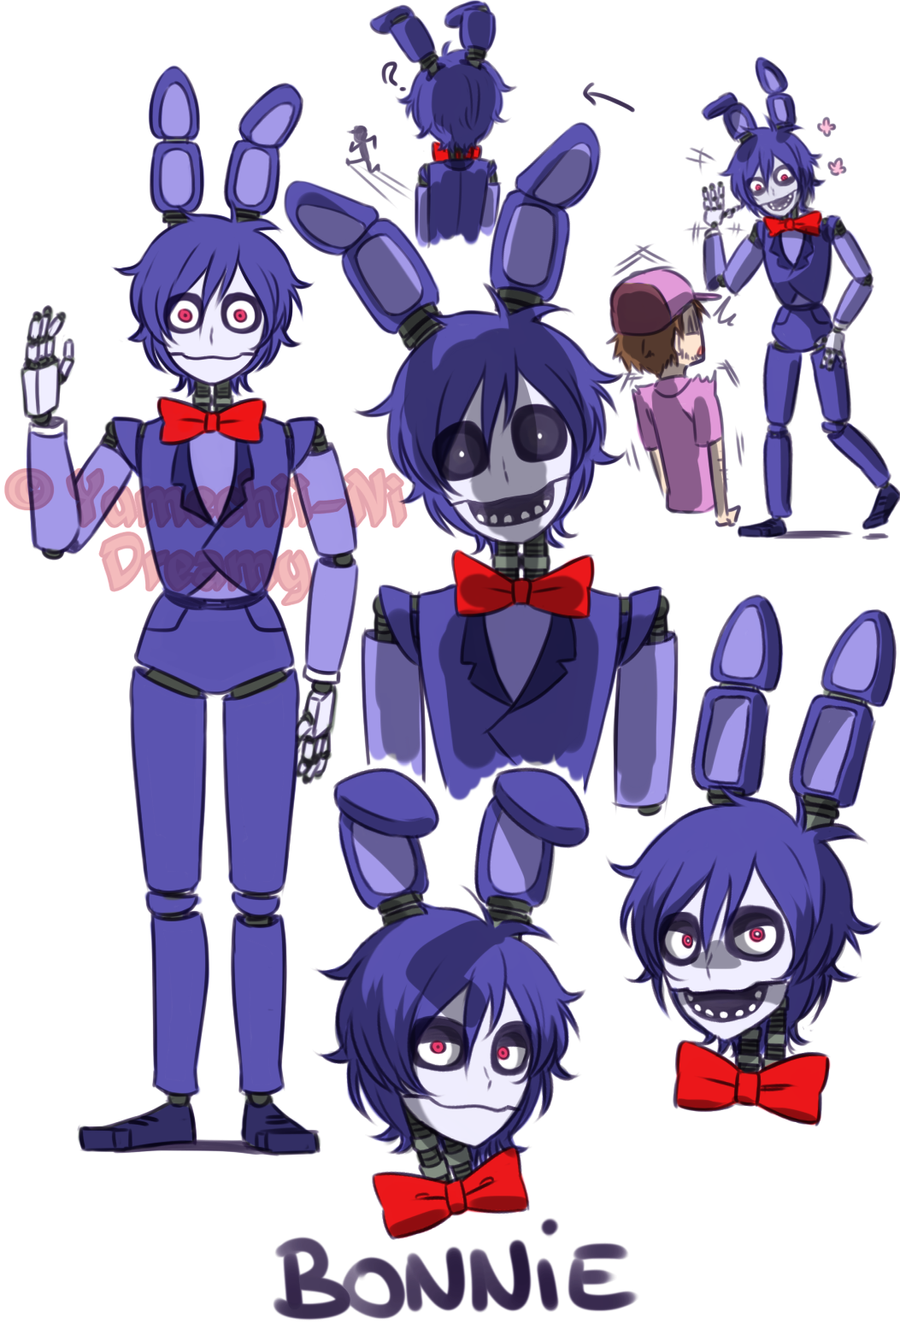 [FNAF HUMAN VERSION] Bonnie by YumeChii-NI on DeviantArt